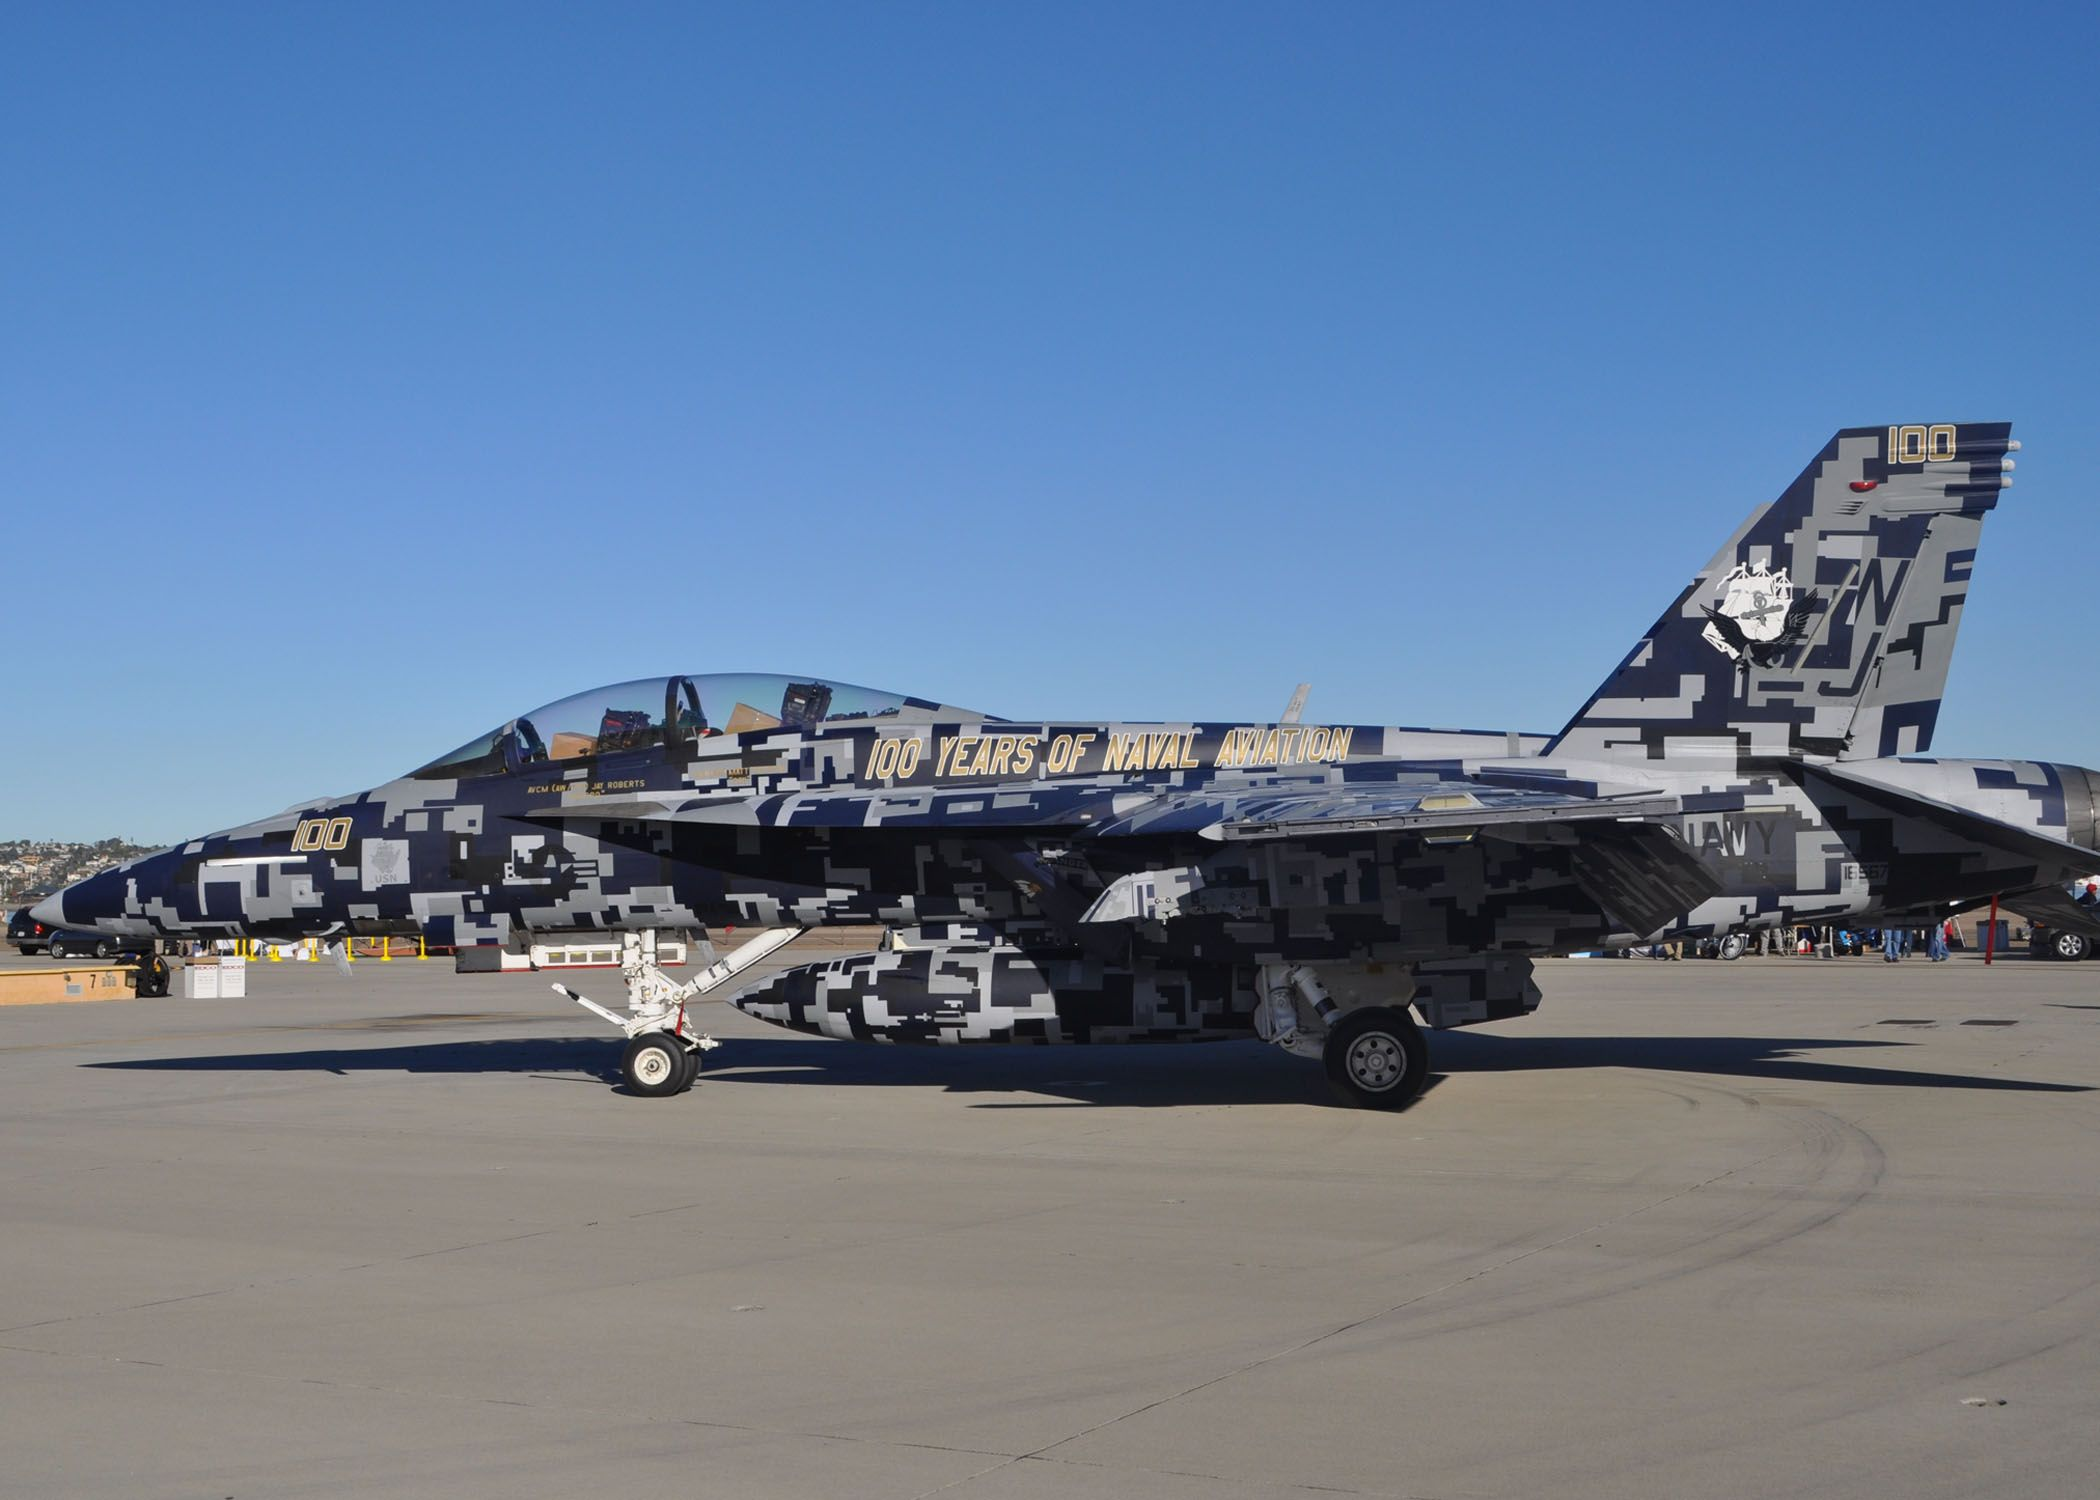 Cool Airplane Paint Schemes File us navy Airplane